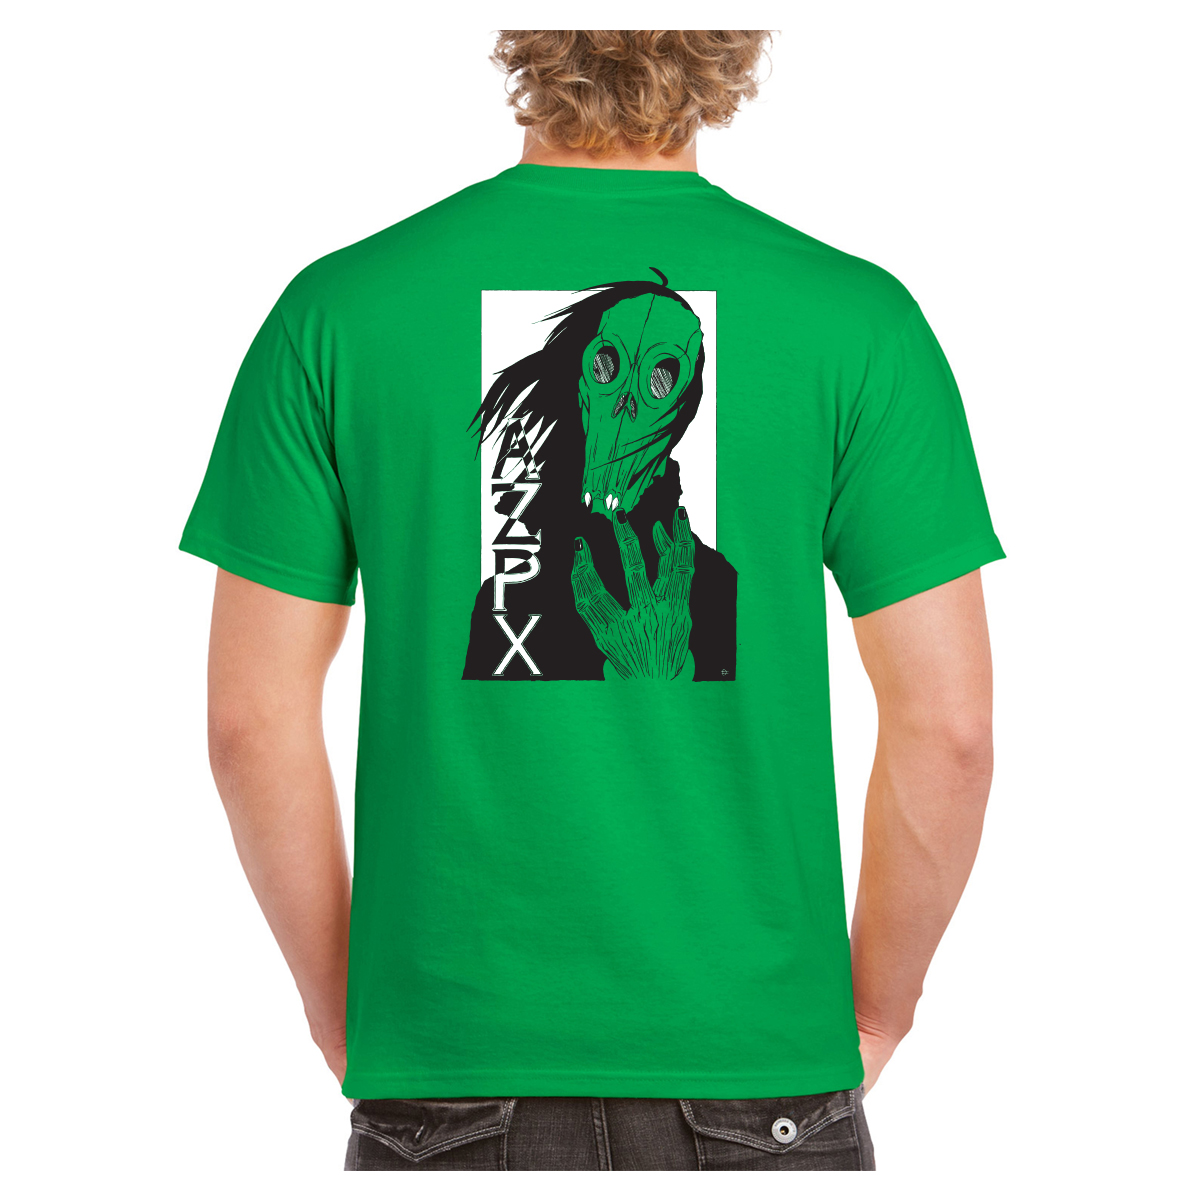 Drake Hendrix x AZPX Collaboration T-shirt Green